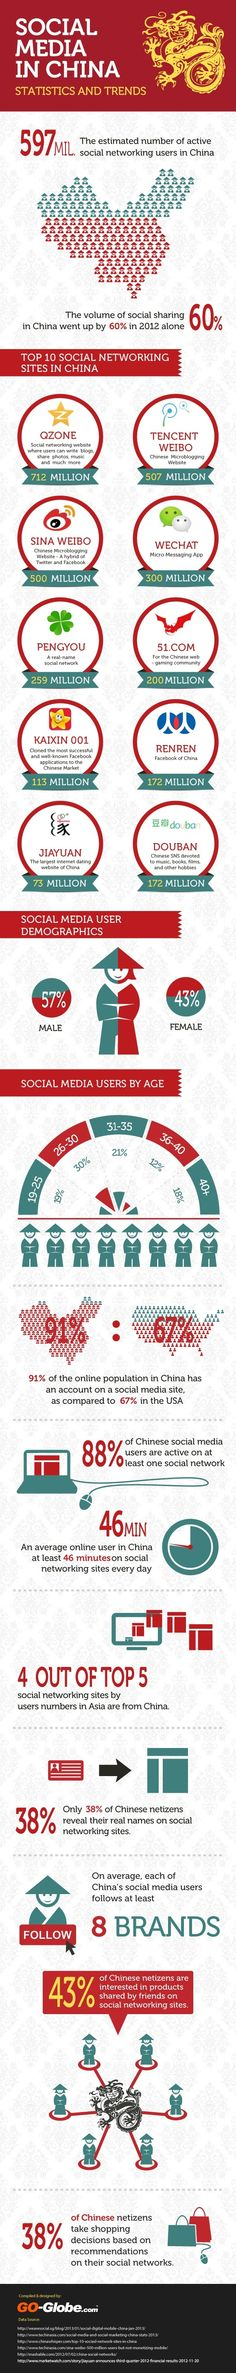 Social Media In China - Statistics and Trends [Infographic]